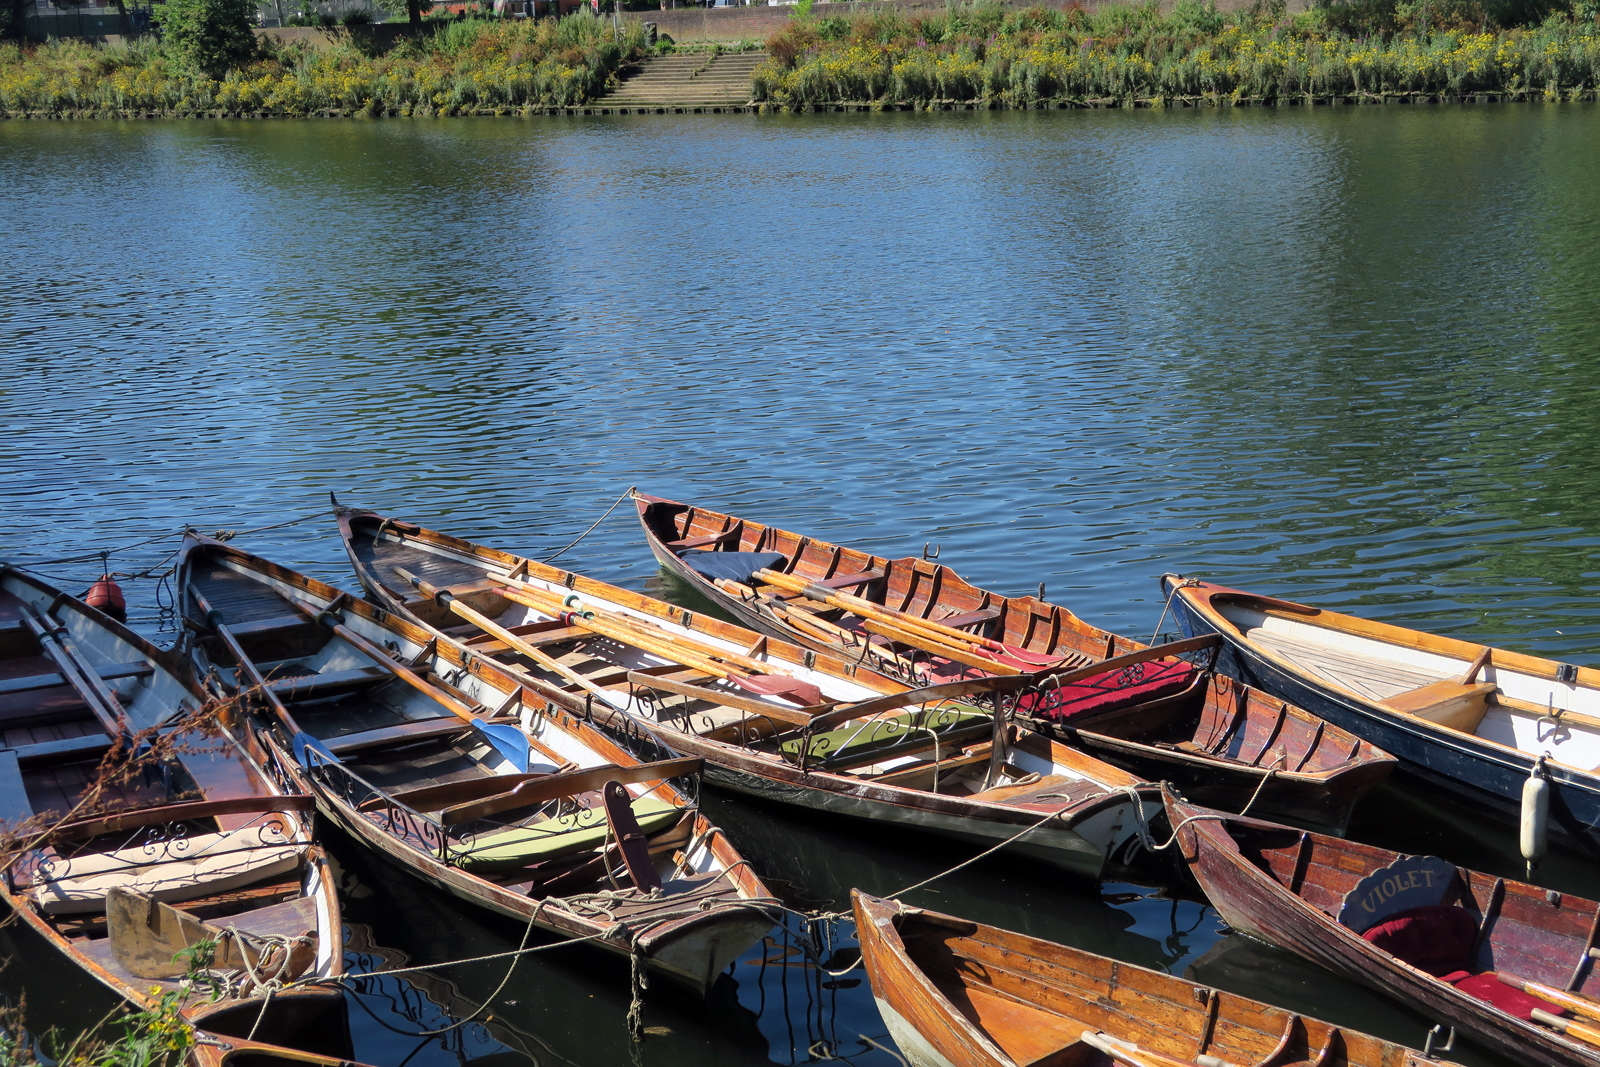 20-Rowing-Boats-Richmond-19_7_16